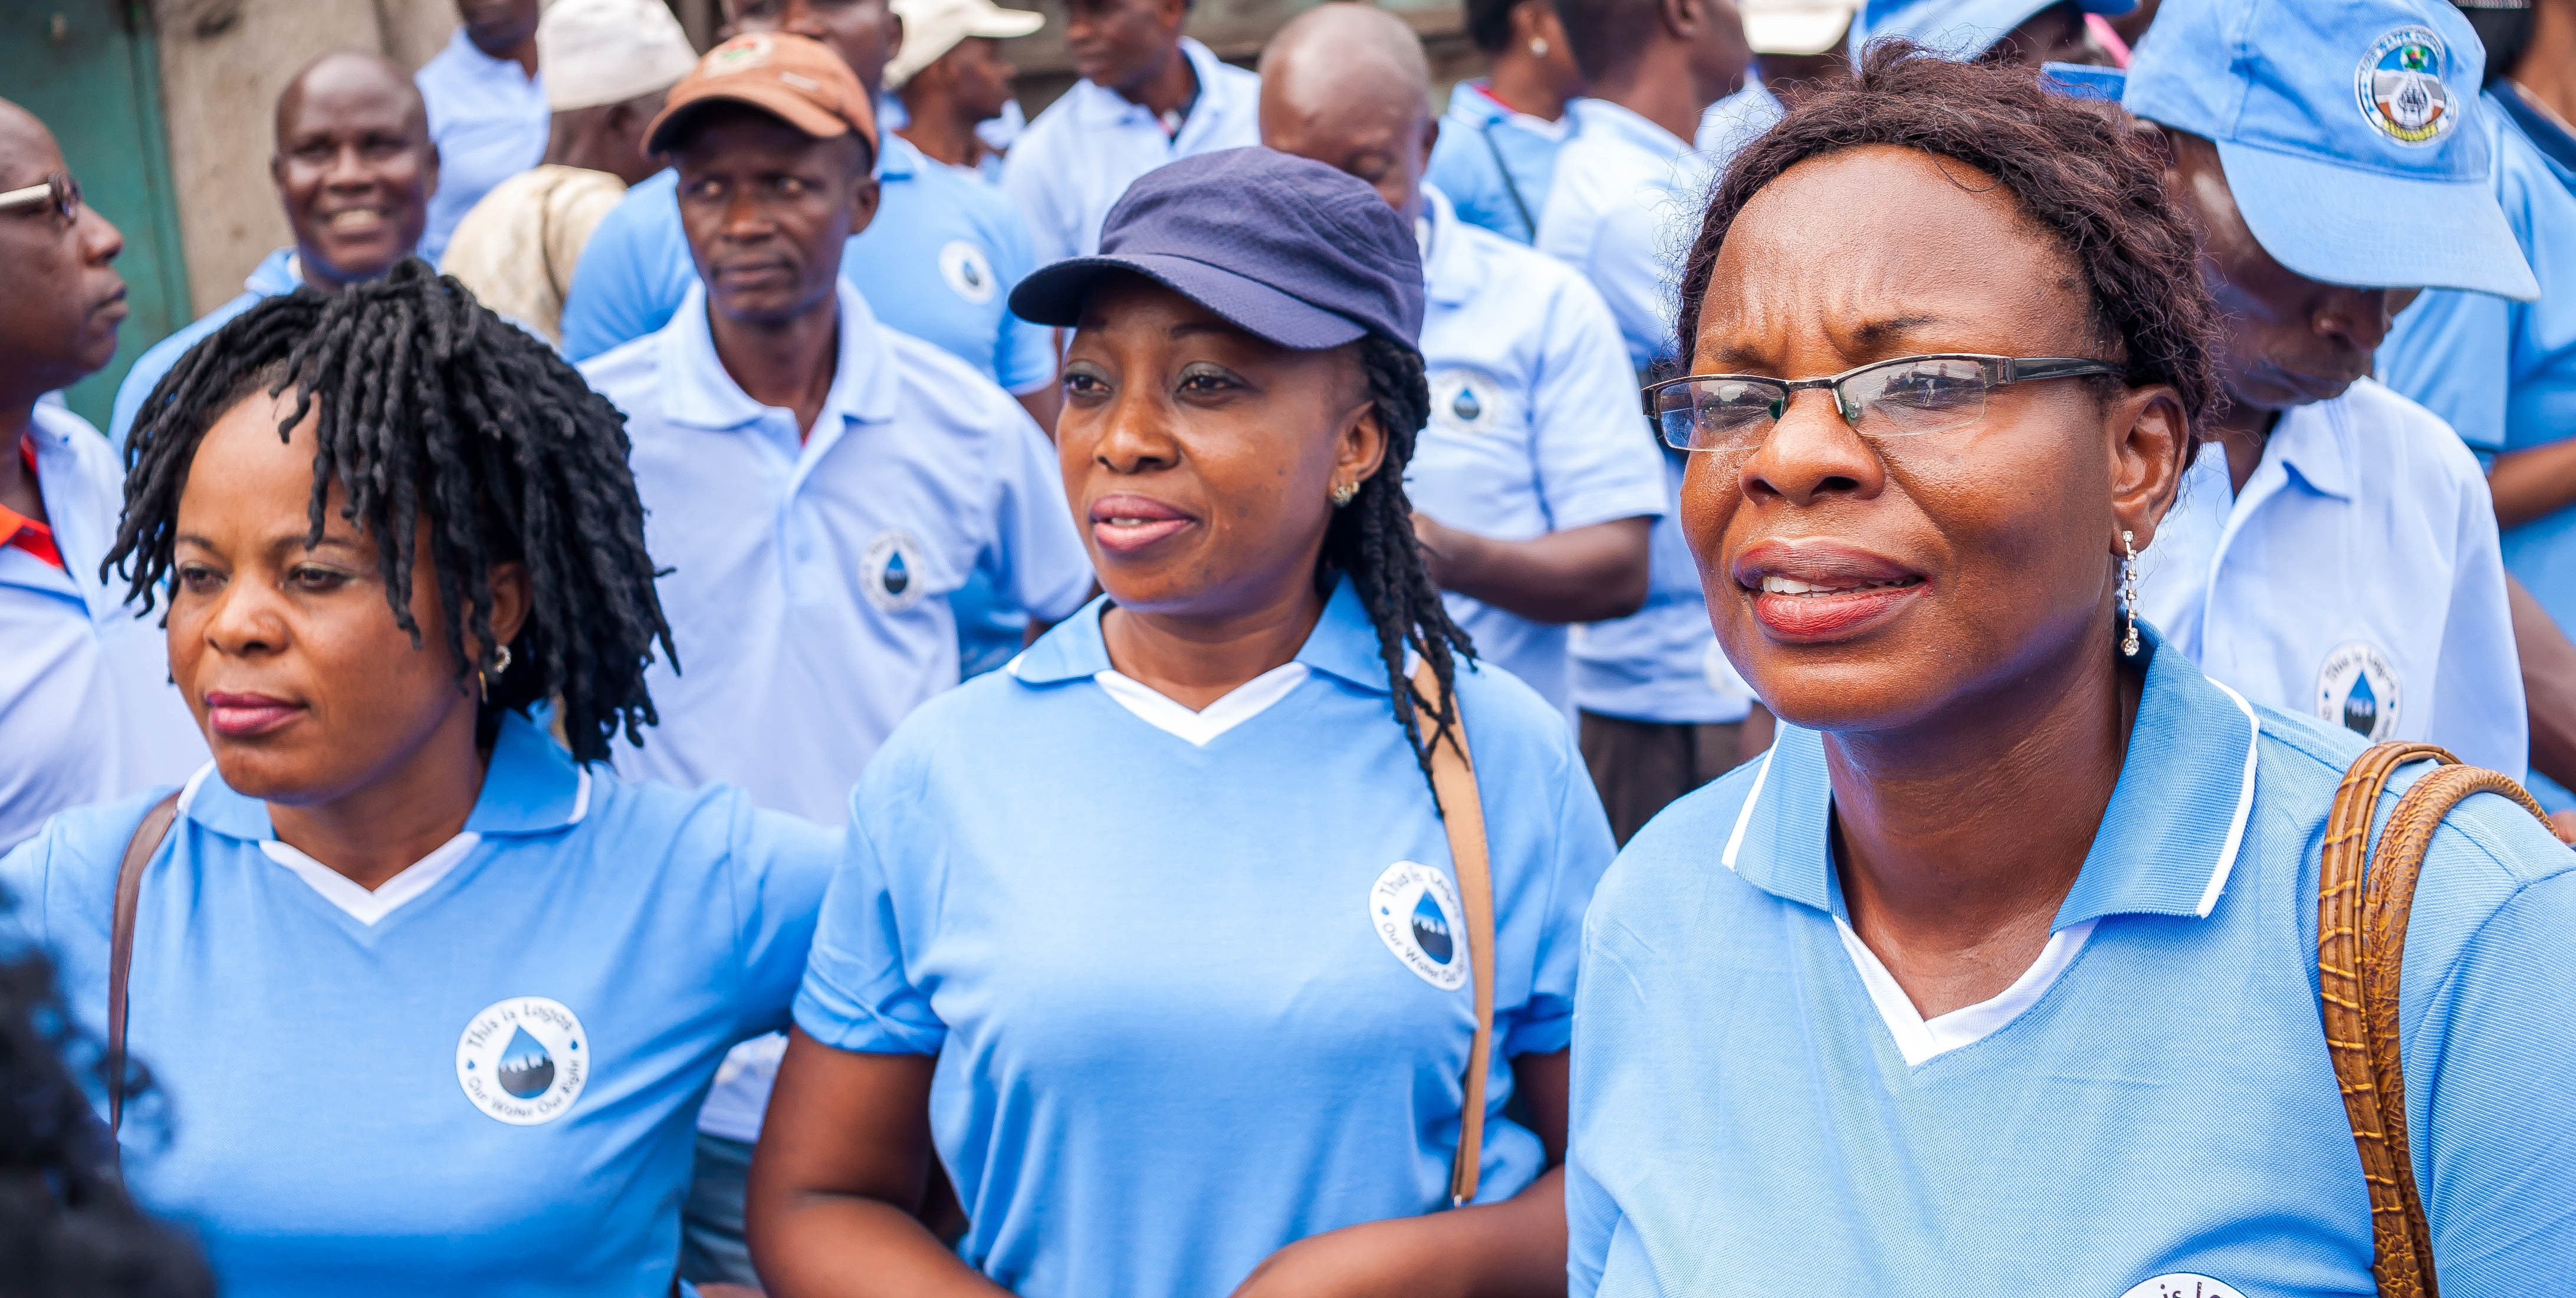 Women at the World Water Day rally in Lagos, Nigeria.